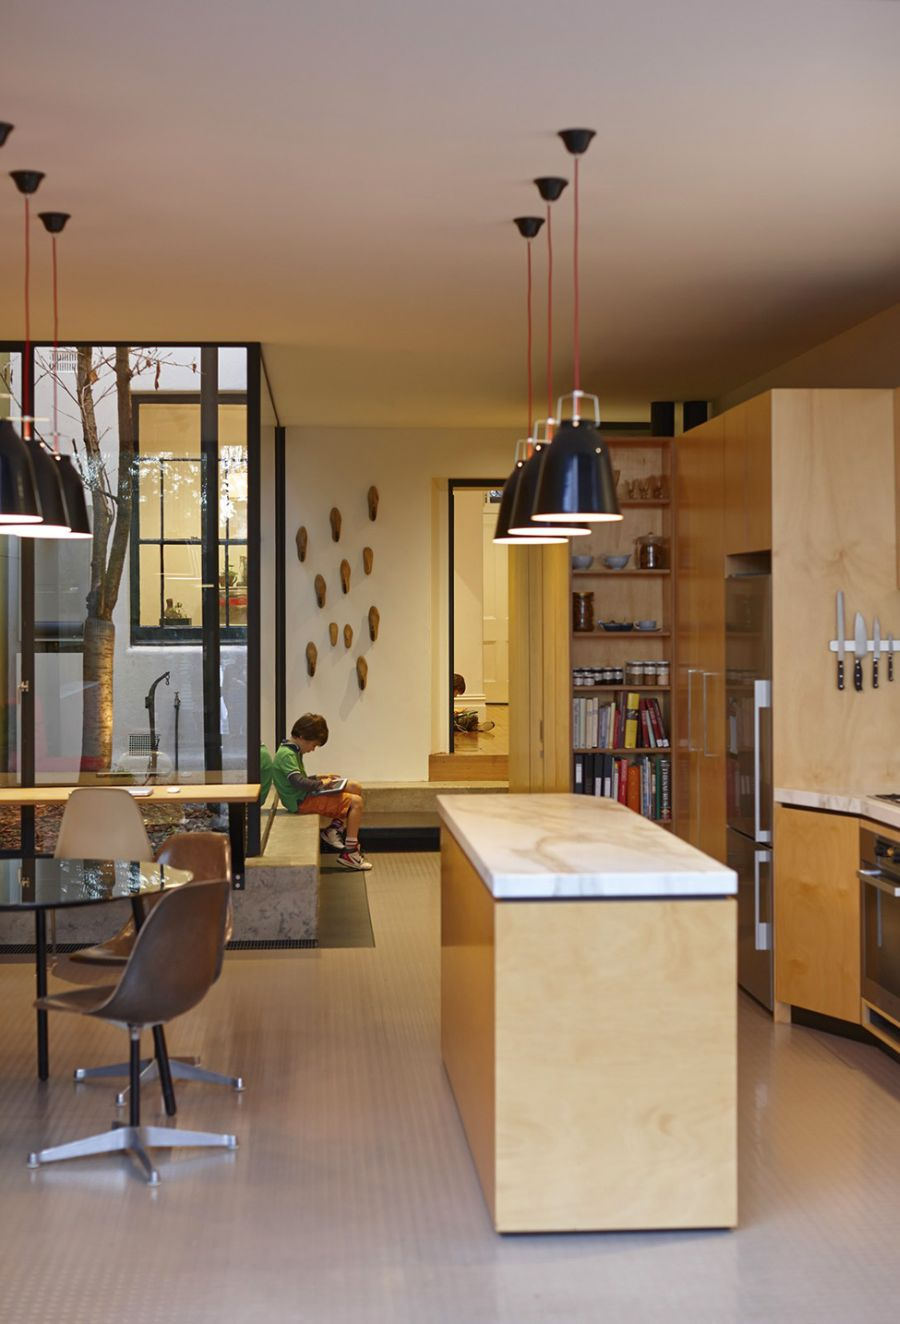 Large pendants above the kitchen island